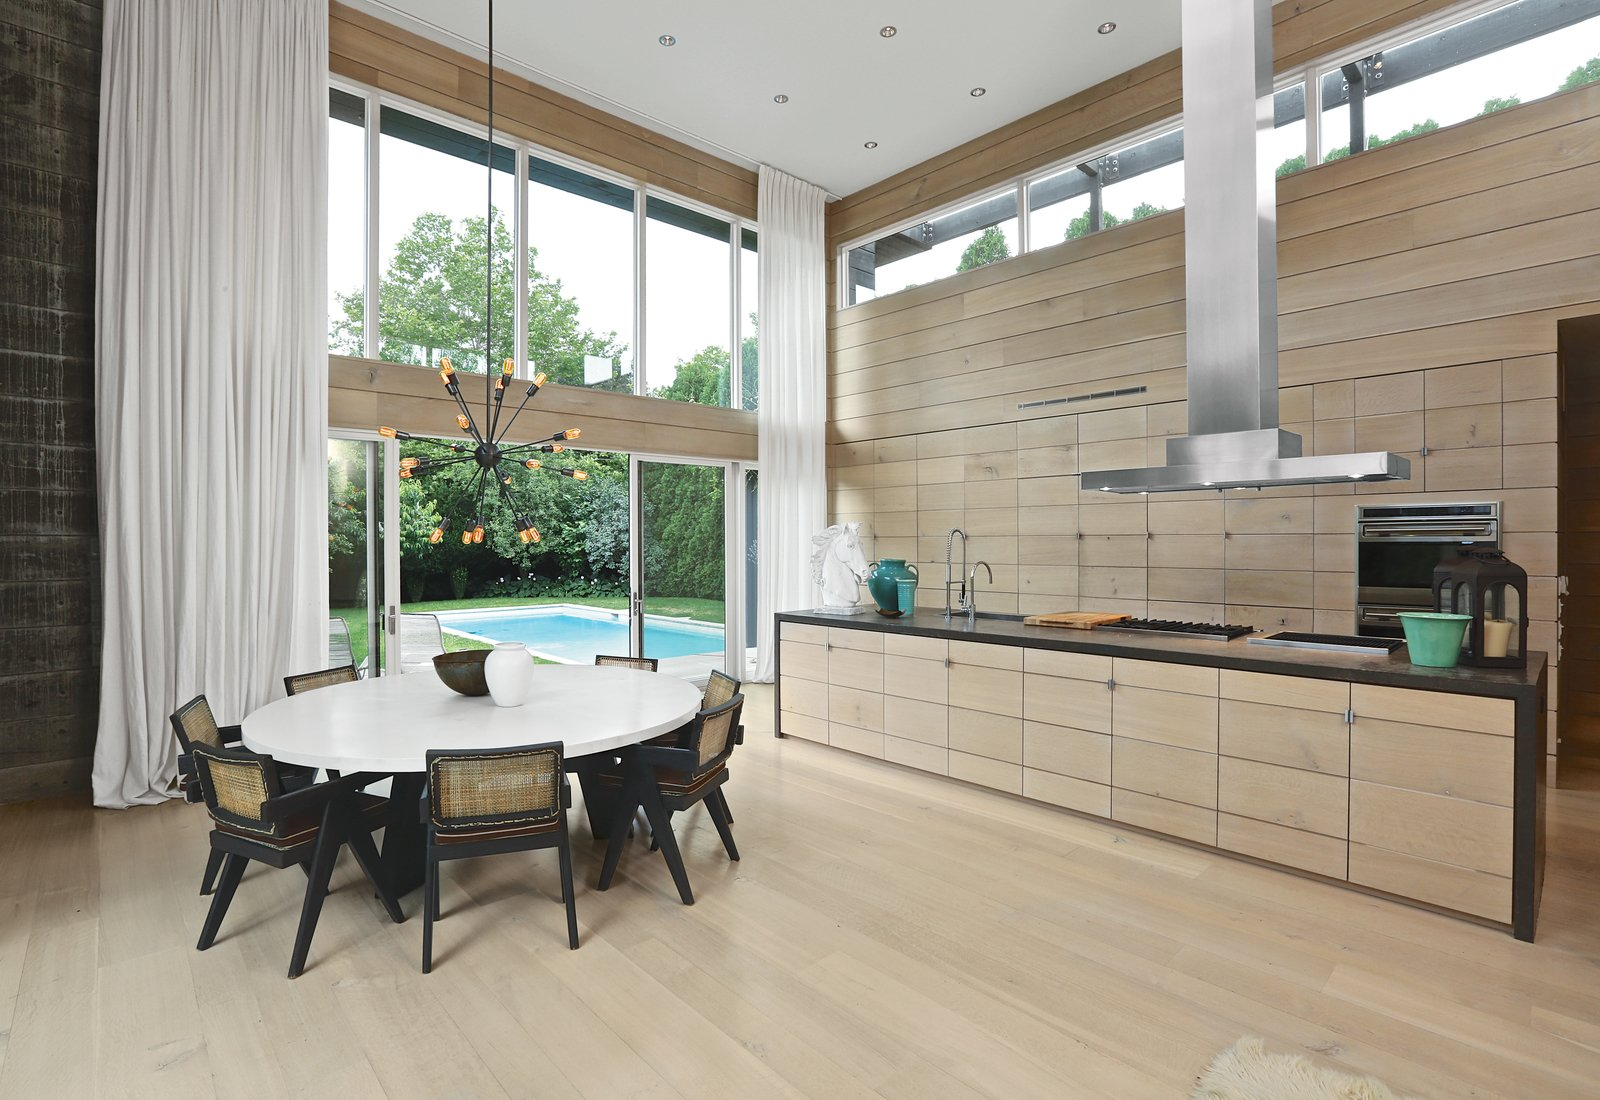 A Sputnik chandelier in aged steel from Restoration Hardware hangs above a custom concrete-topped table. The vintage cane-and-teak dining chairs were designed in 1966 by Pierre Jeanneret. In the kitchen, a brushed stainless steel range hood by Modern-Aire is matched with faucet hardware from Dornbracht, a Blanco sink, Viking rangetops, and built-in ovens by Wolf. Recessed lighting overhead uses LED bulbs set in Juno housing.  Photo 7 of 11 in Spotted: 10 Modern Homes in the Hamptons